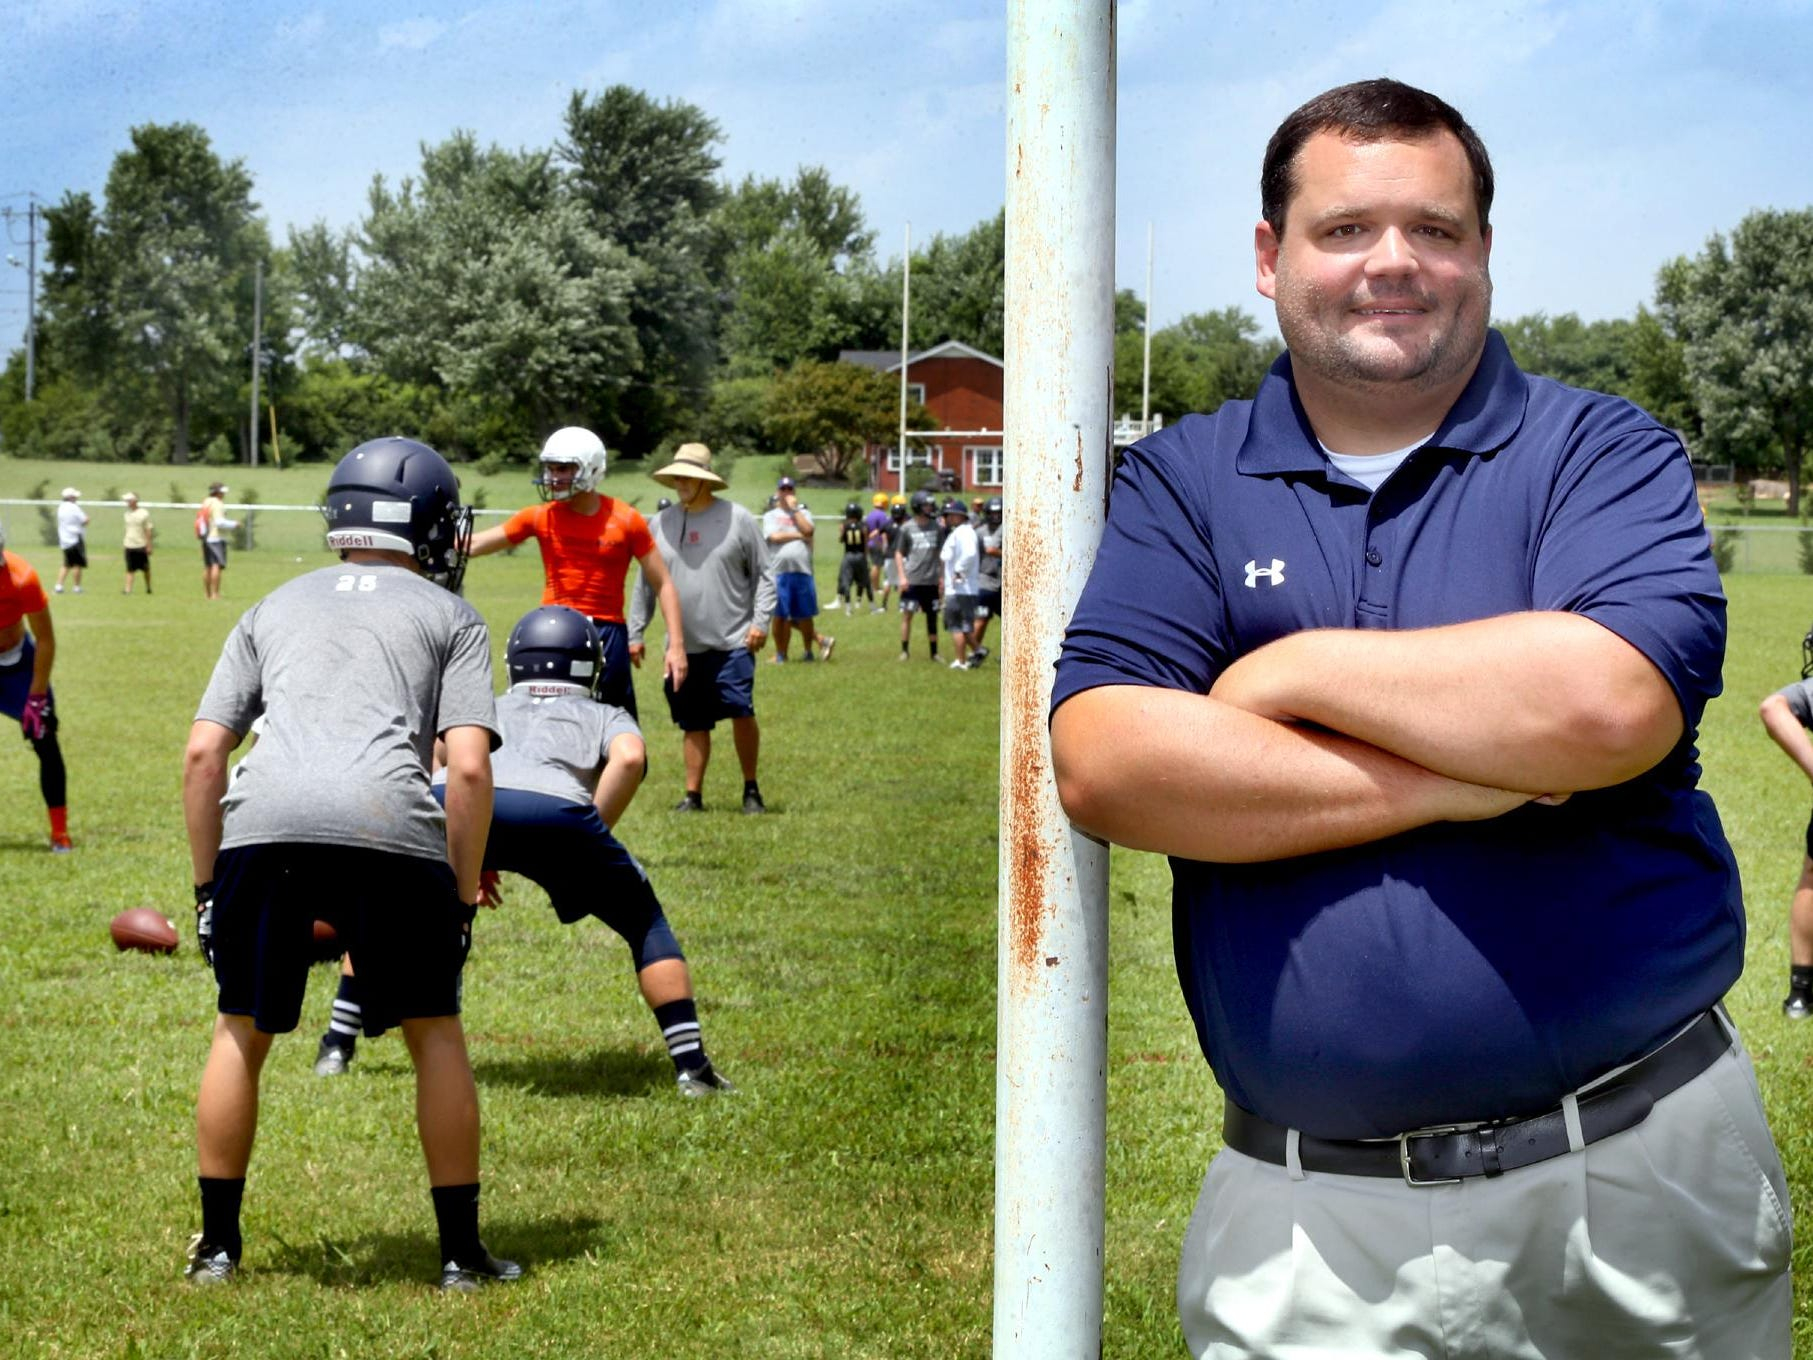 Brad Rohling, is the Coordinator of Athletic Training Outreach at NHC Rehabilitation and TOA.